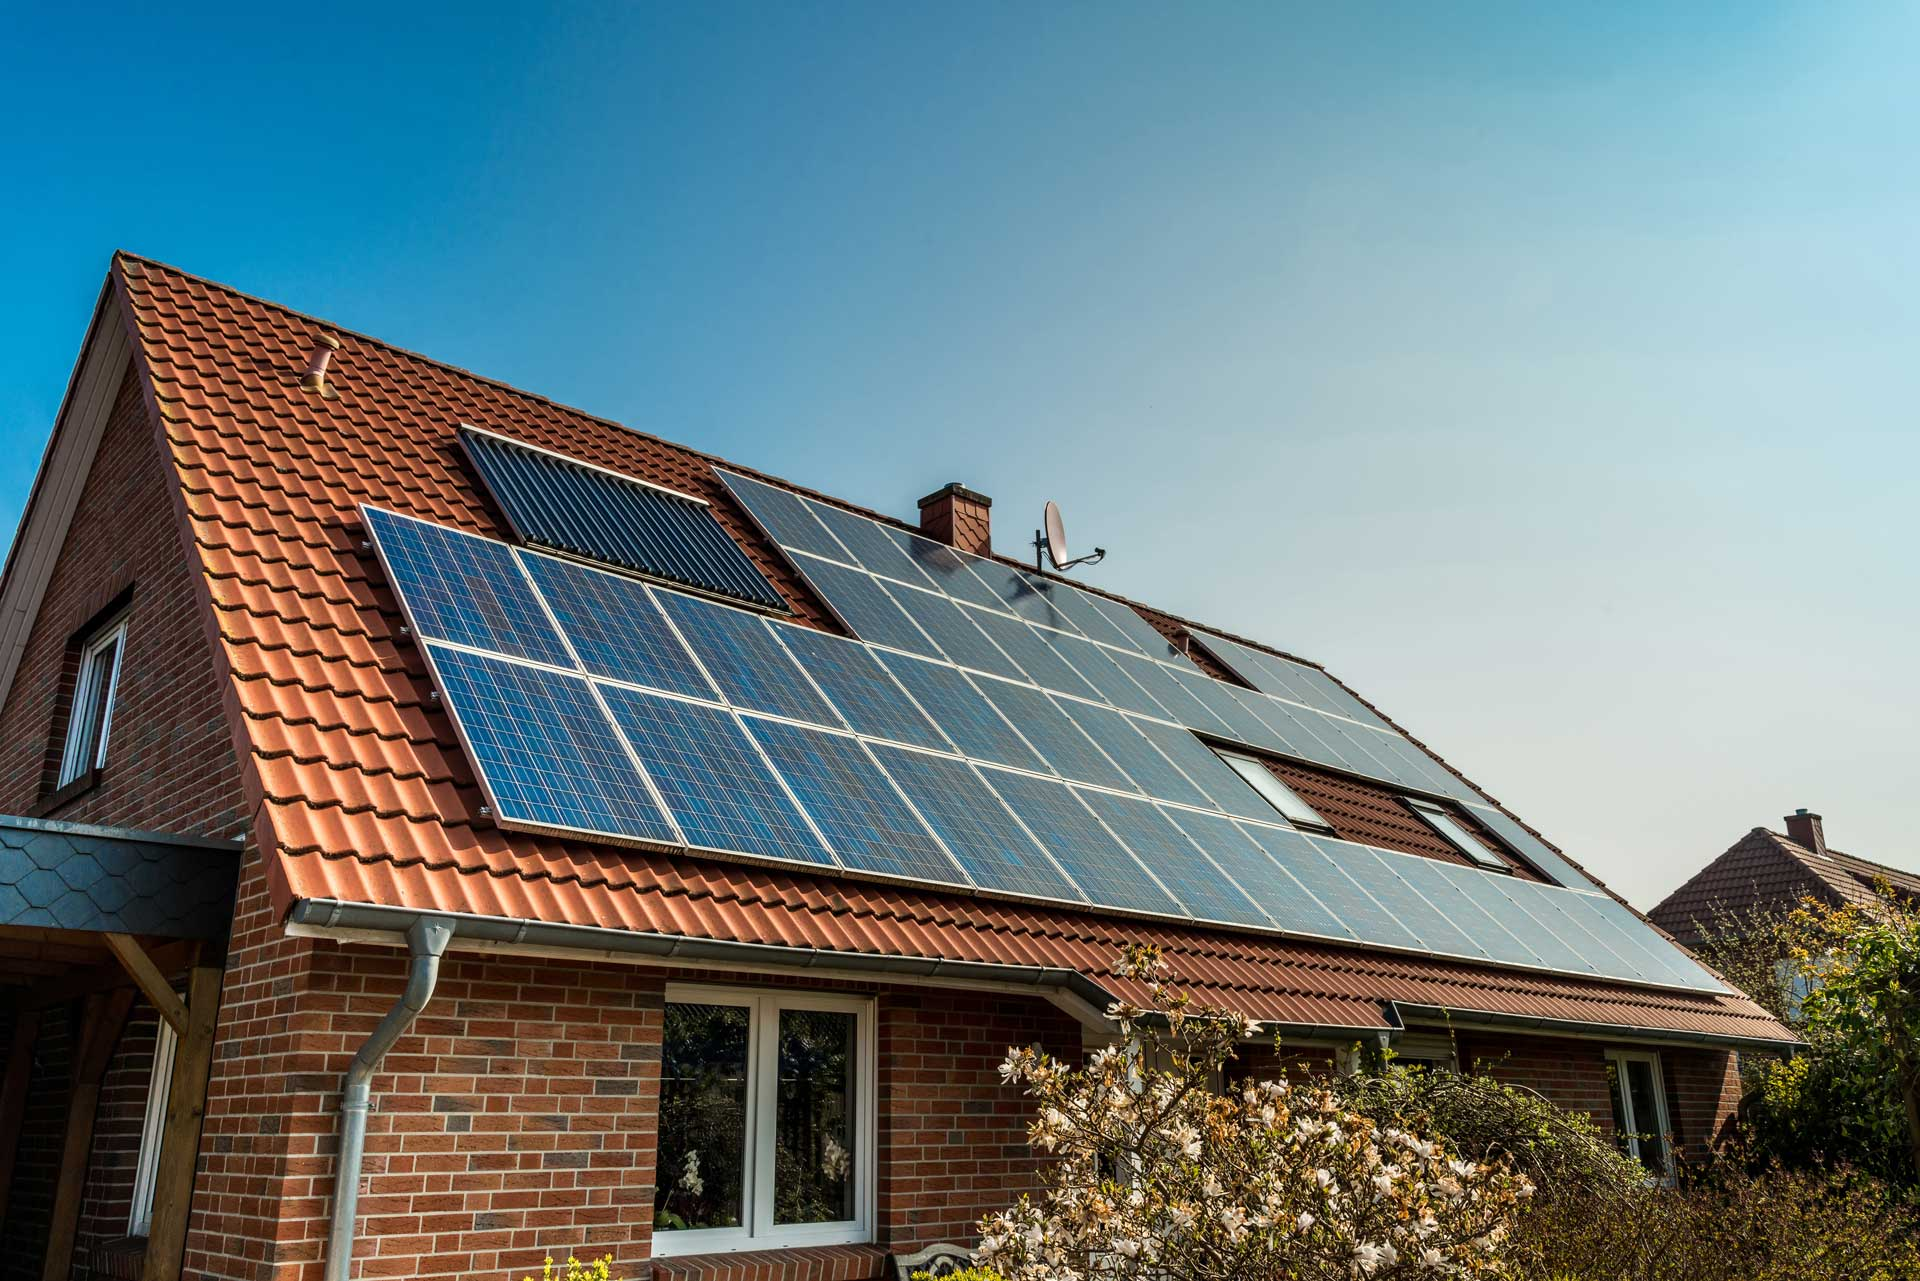 Solar panels fitted to the roof of a bungalow